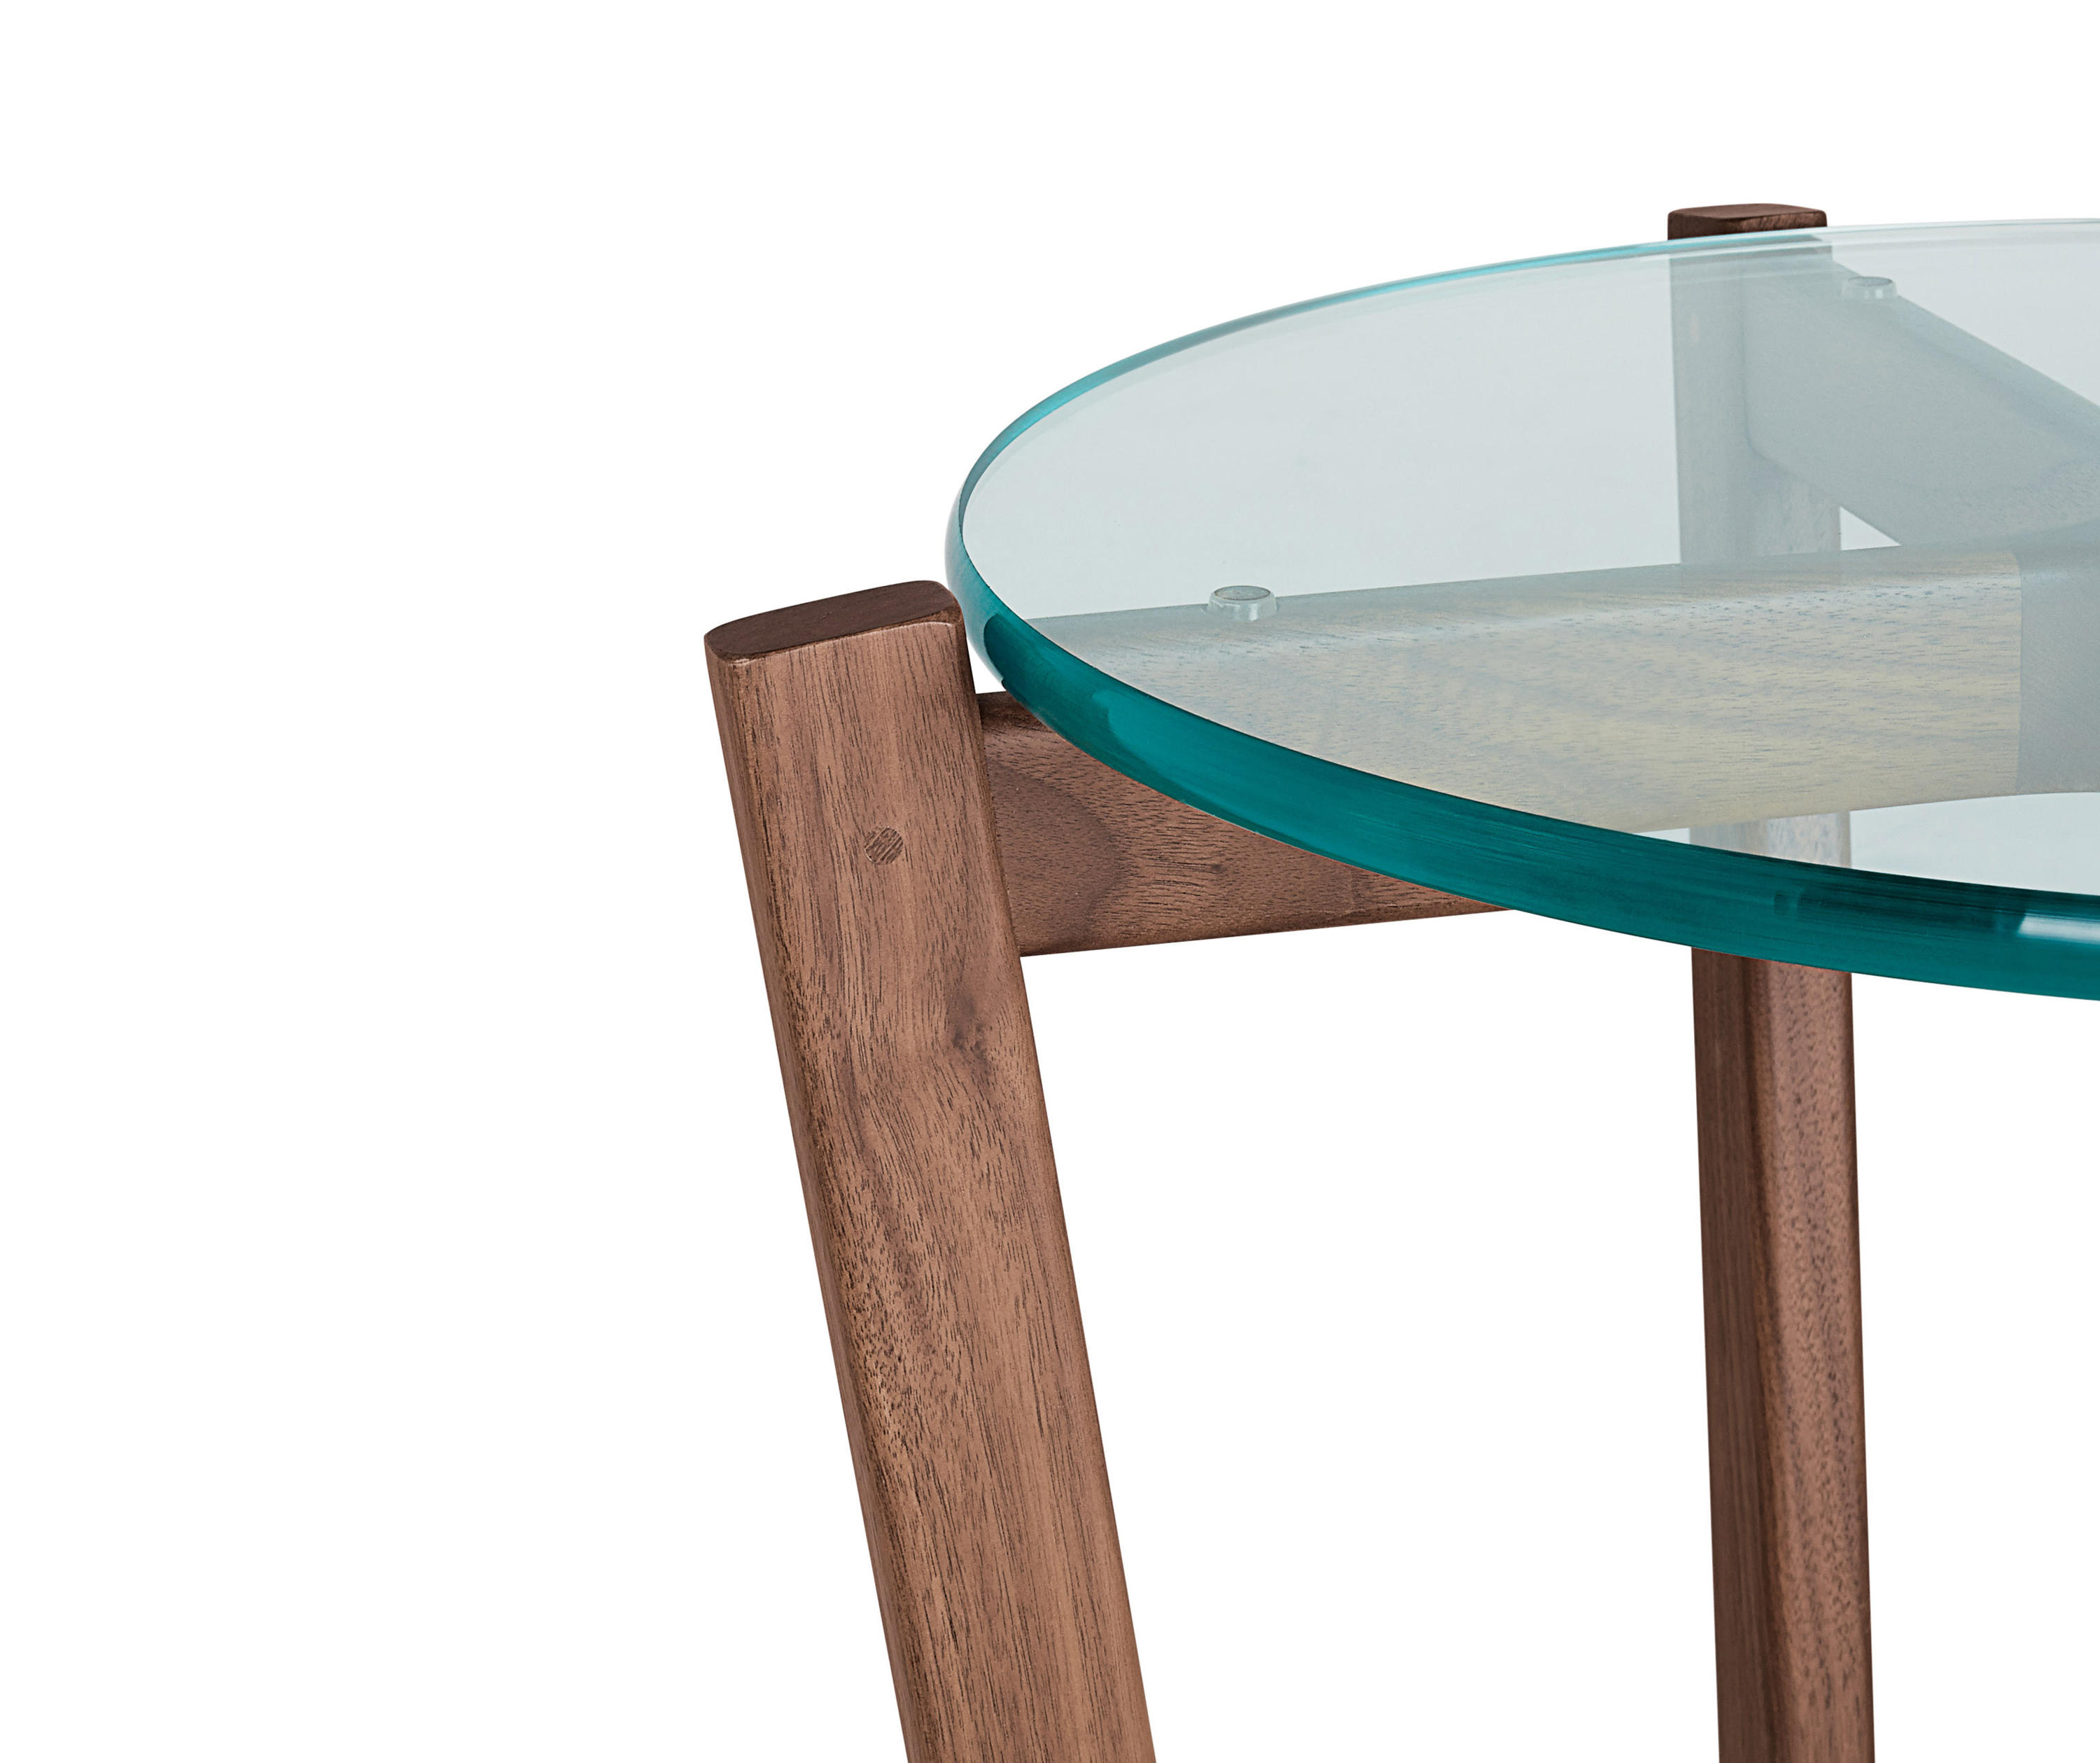 Atlas side table side tables from design within reach architonic atlas side table by design within reach side tables geotapseo Images